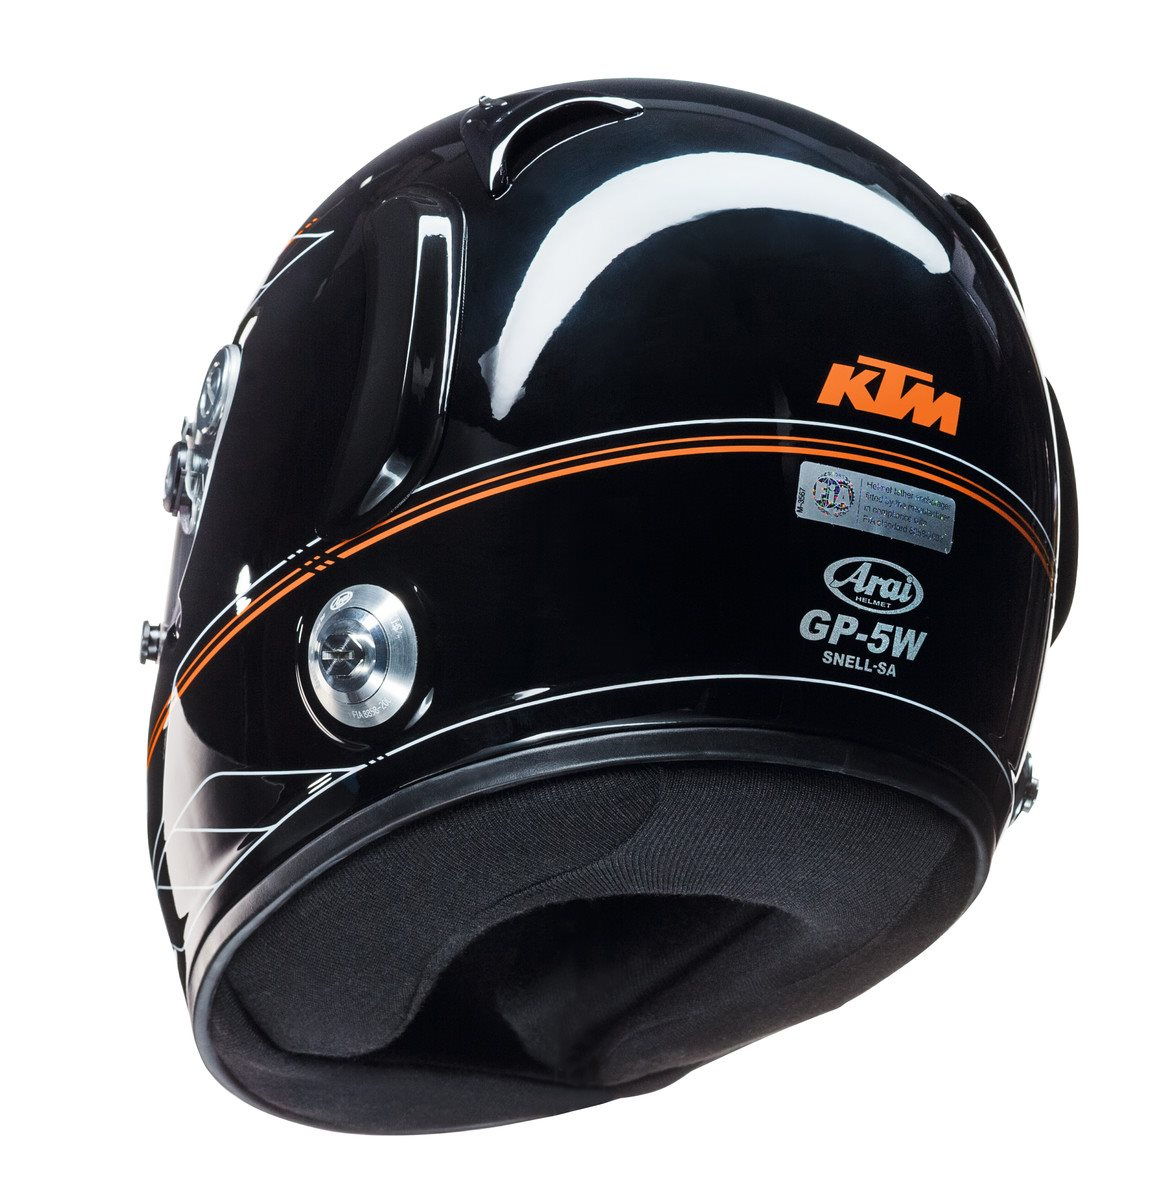 X-Bow Racing Helmet GP-5W